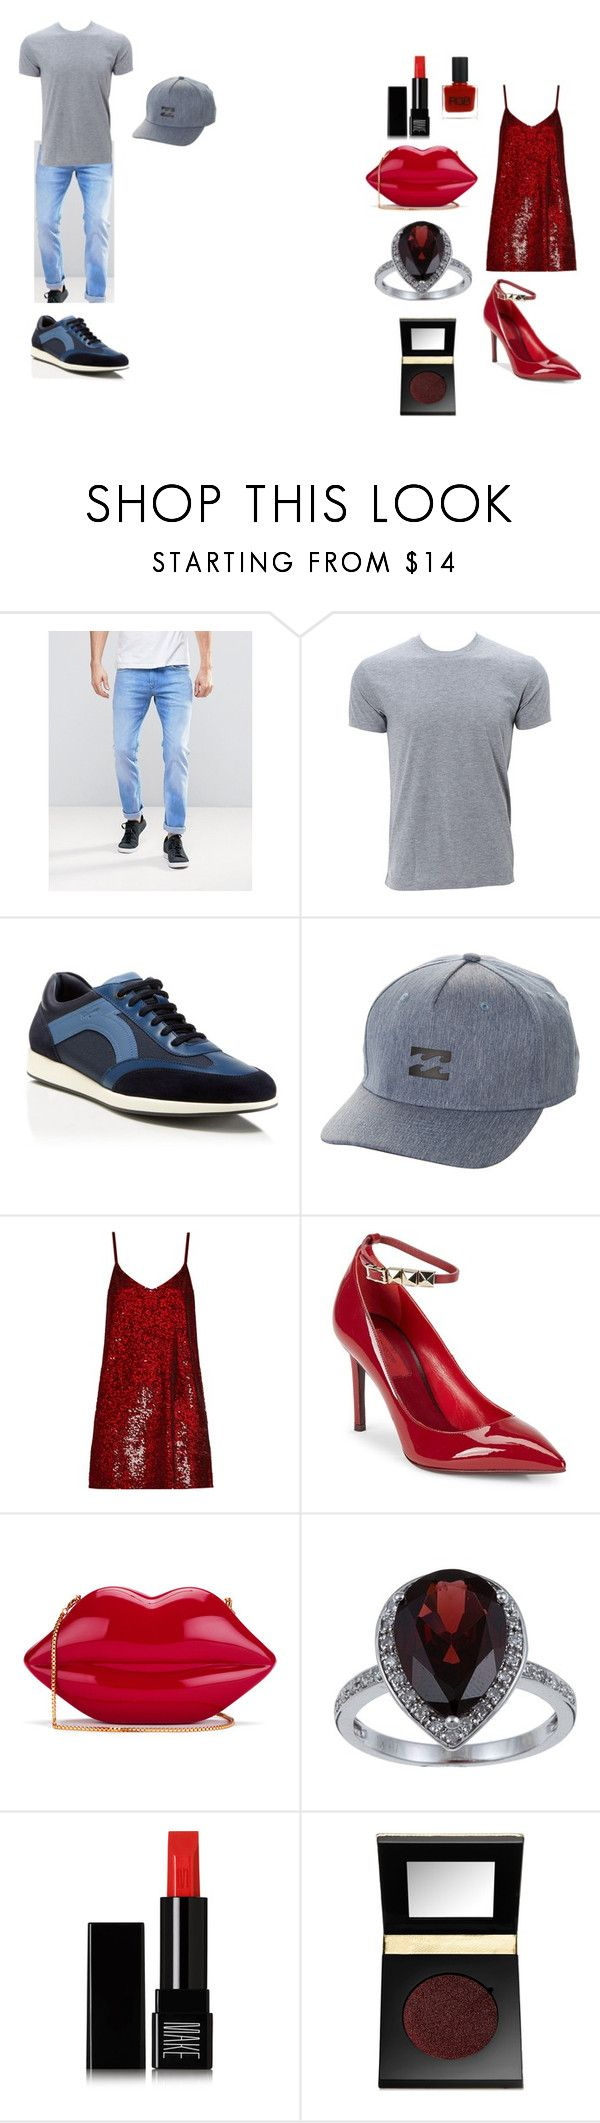 """Aquarius Man + Aries Woman"" by skyelynnalexis ❤ liked on Polyvore featuring Pepe Jeans London, Simplex Apparel, Salvatore Ferragamo, Billabong, Ashish, Valentino, Lulu Guinness, Viducci, Make and tarte"